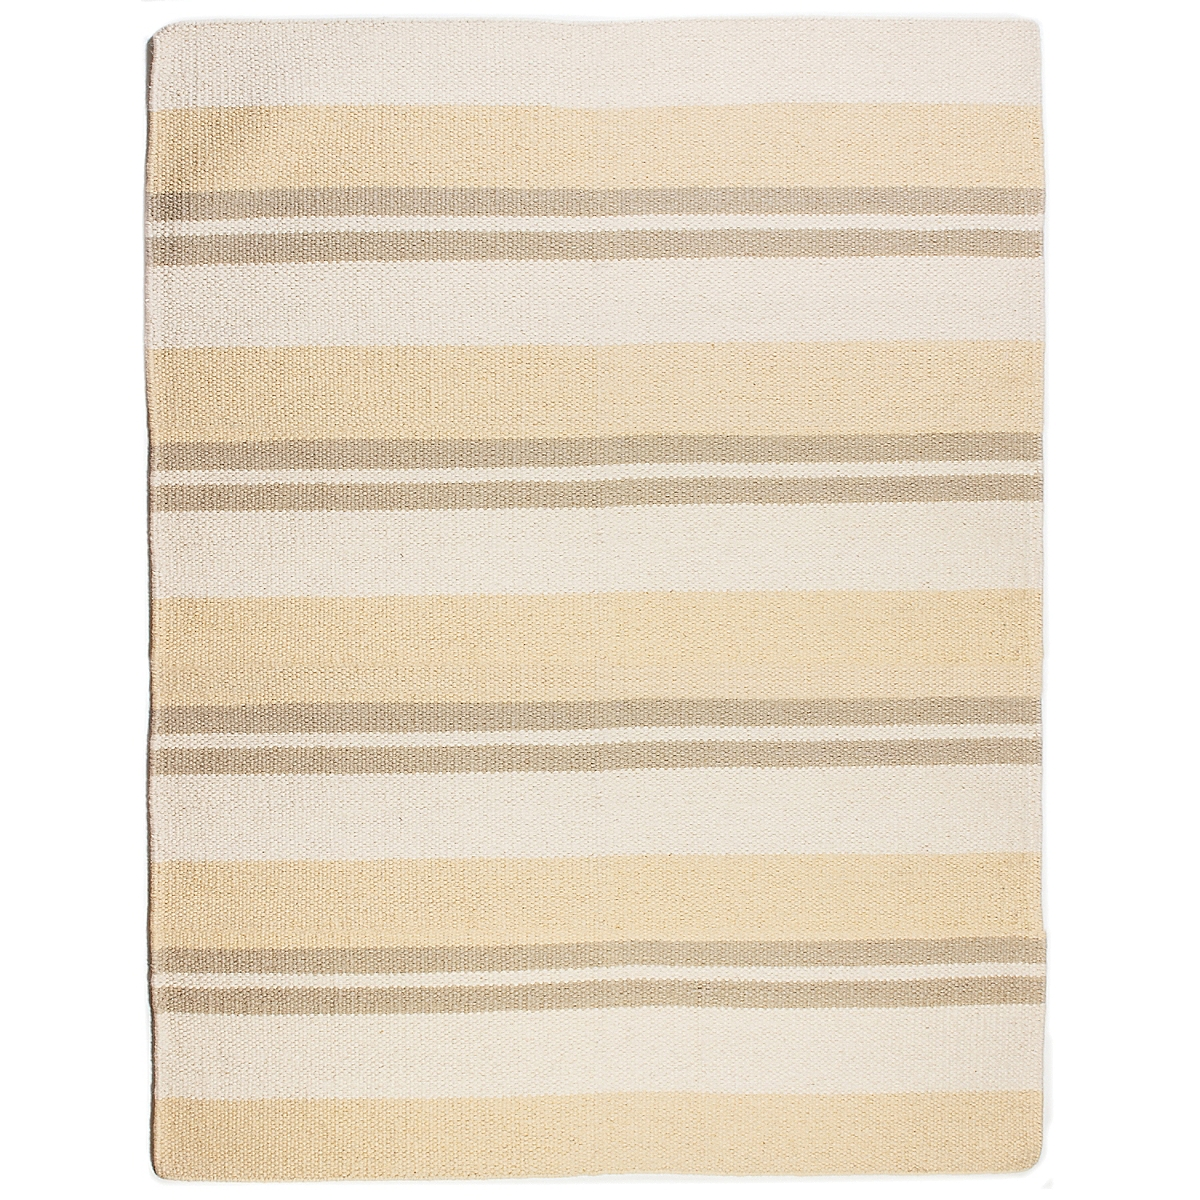 Jupiter Inlet Wool Berber Striped Rug